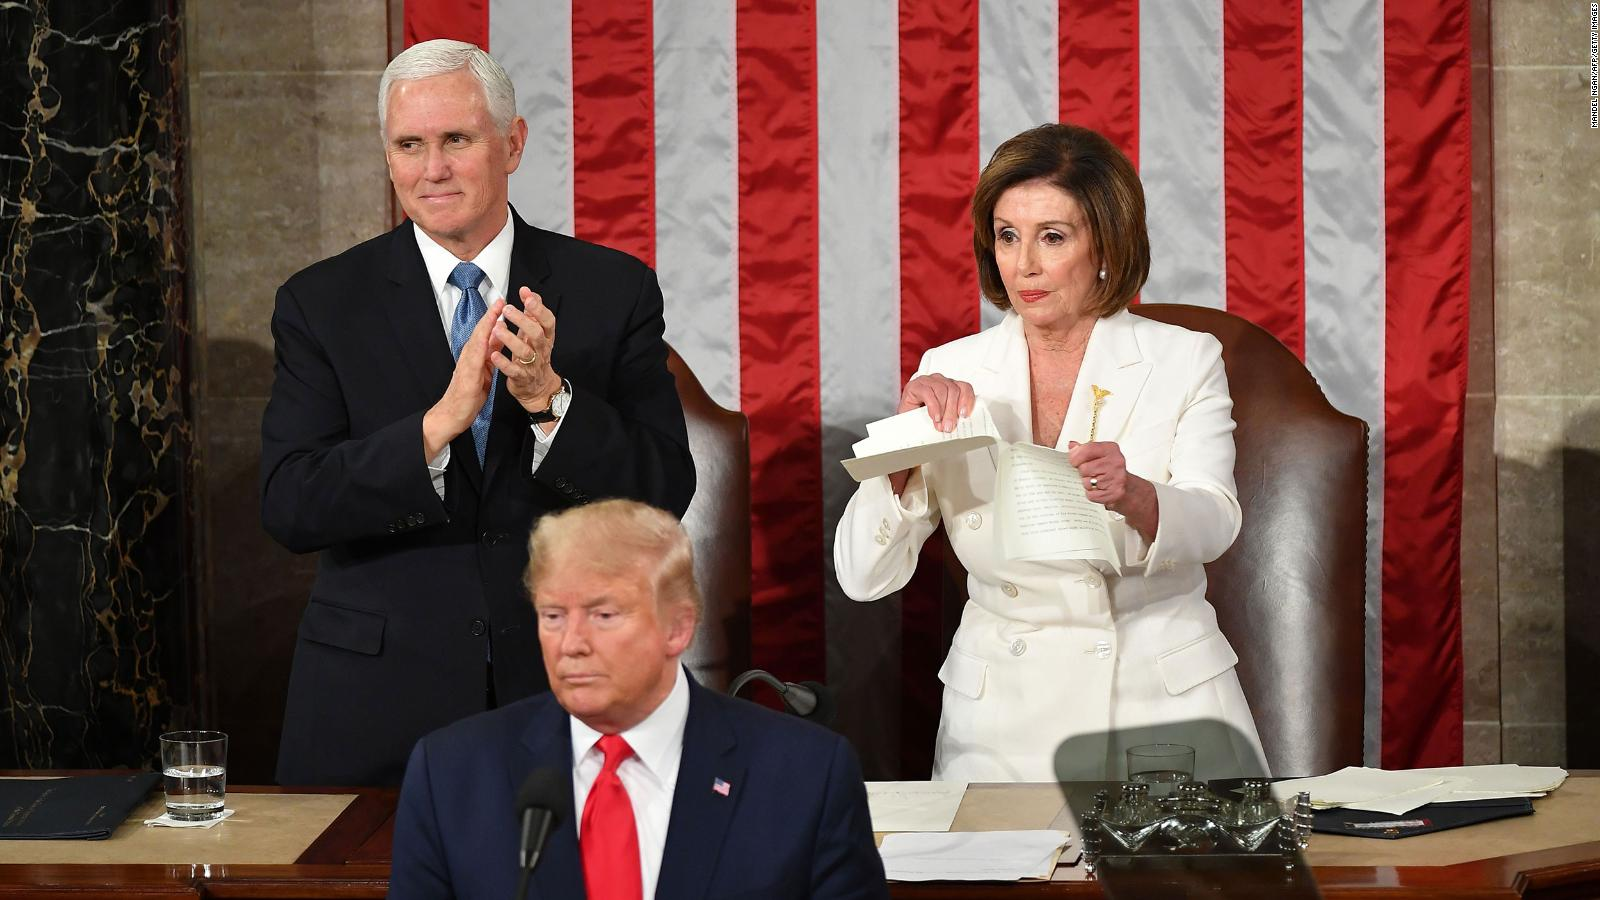 Nancy Pelosi ripping Donald Trump's speech may not have been planned, but  it was effective - CNN